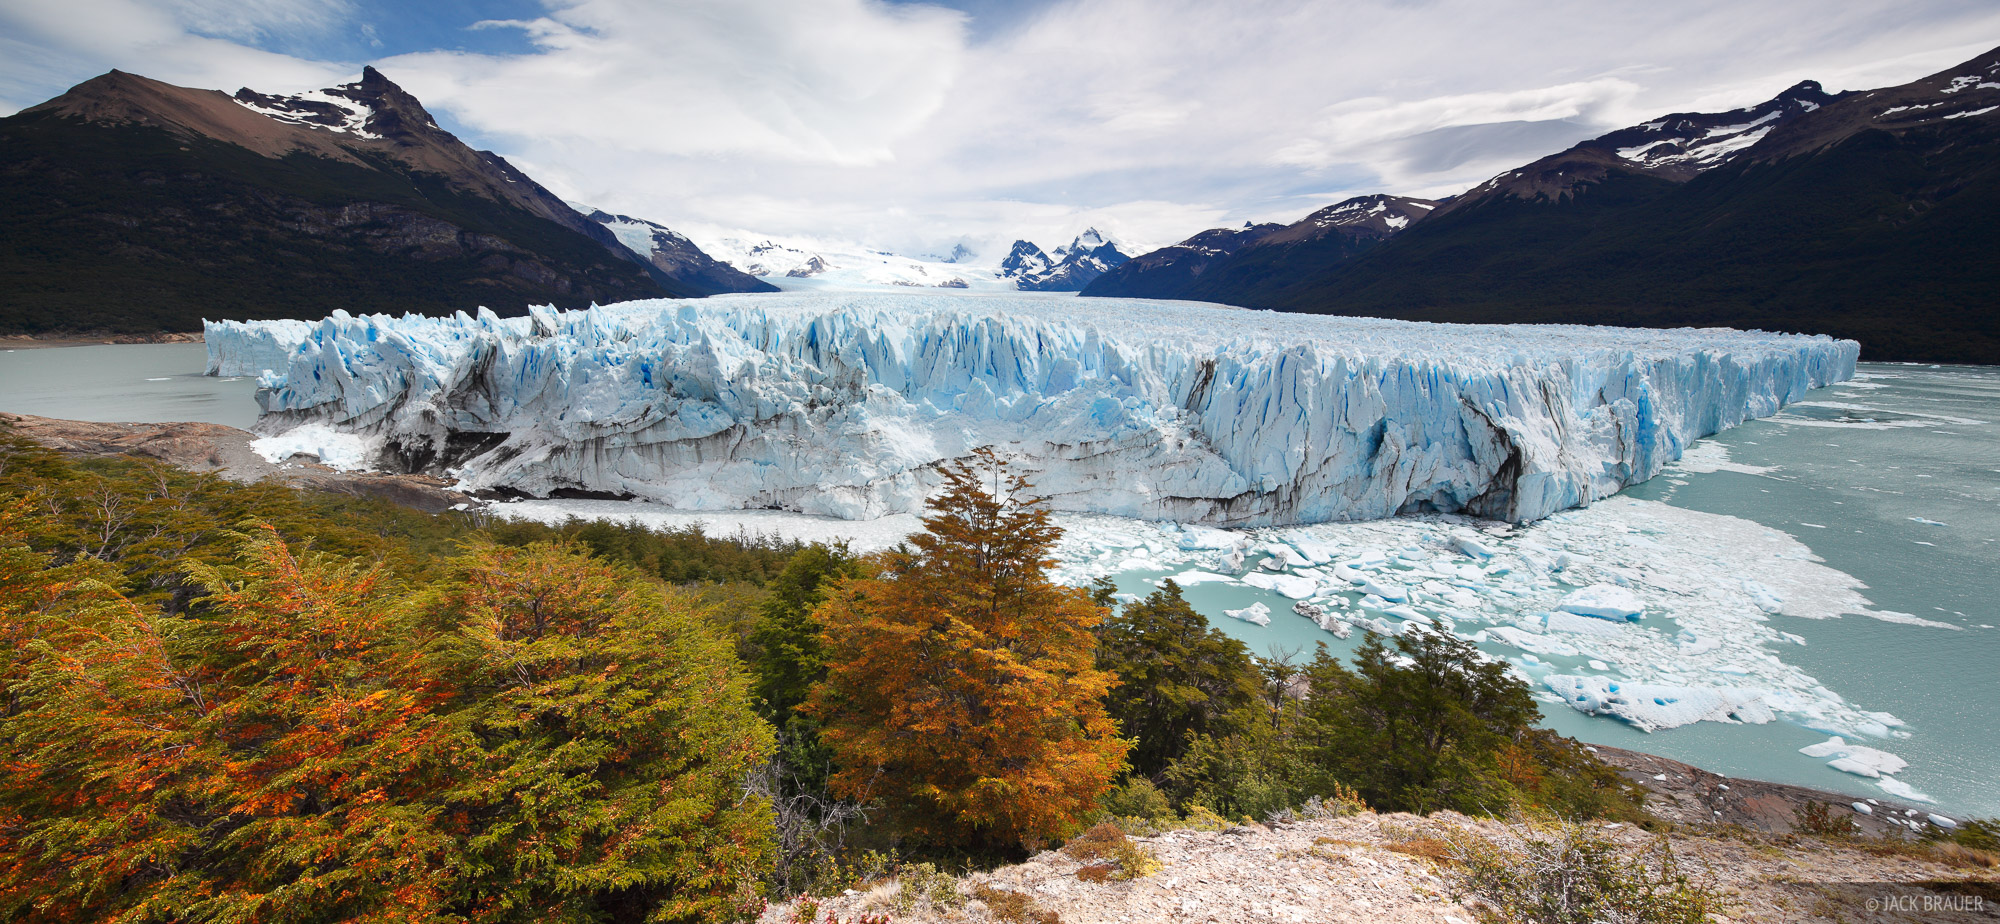 The Perito Moreno Glacier near El Calafate is one of about seven or eight glaciers that flow out from the Southern Patagonian...